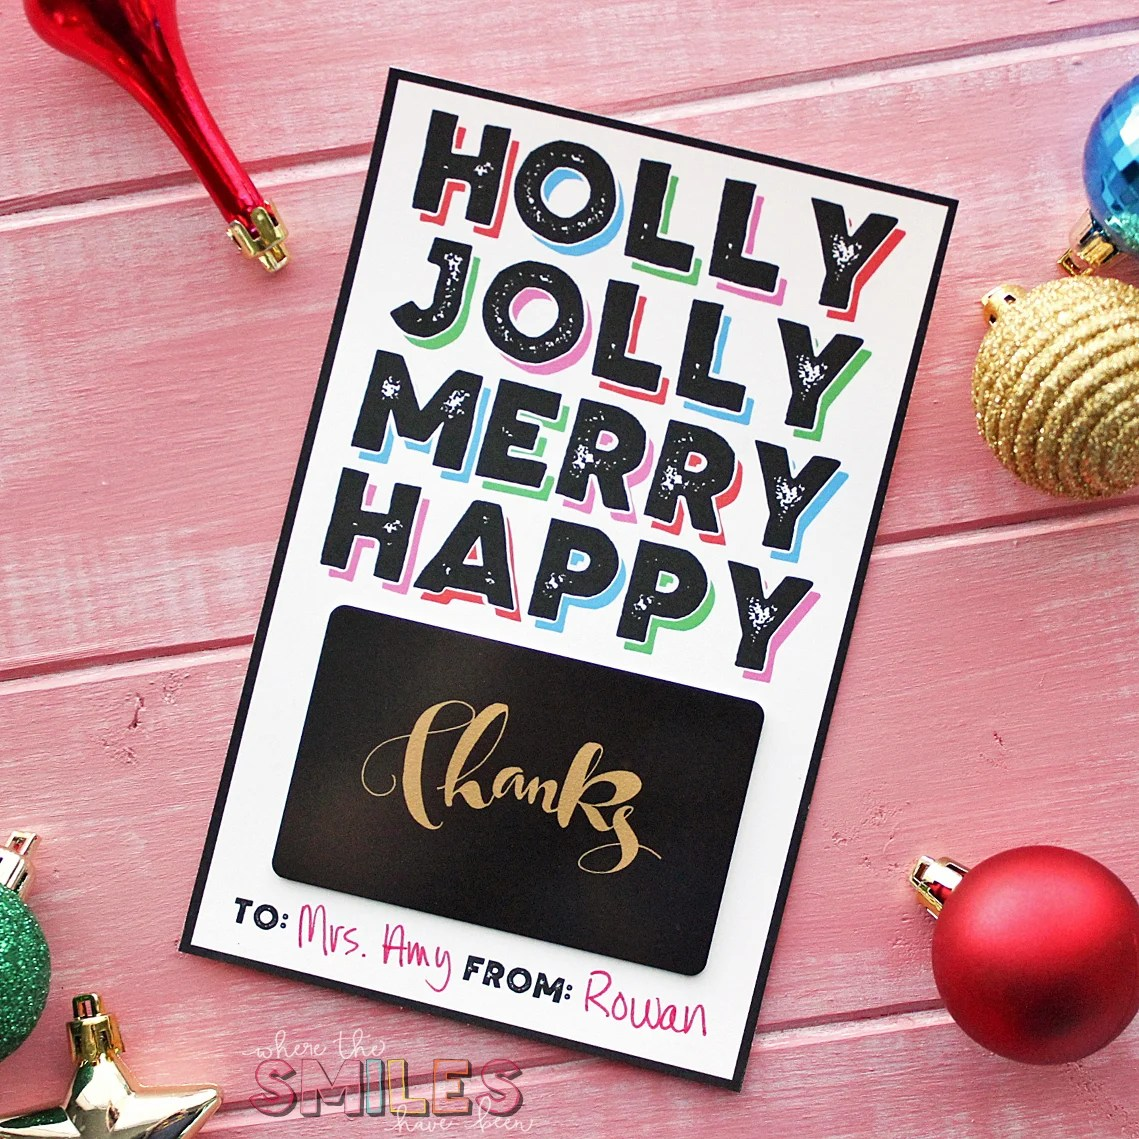 FREE Modern Christmas Gift Card Holder Printable! | Where The Smiles Have Been #Christmas #giftcard #printable